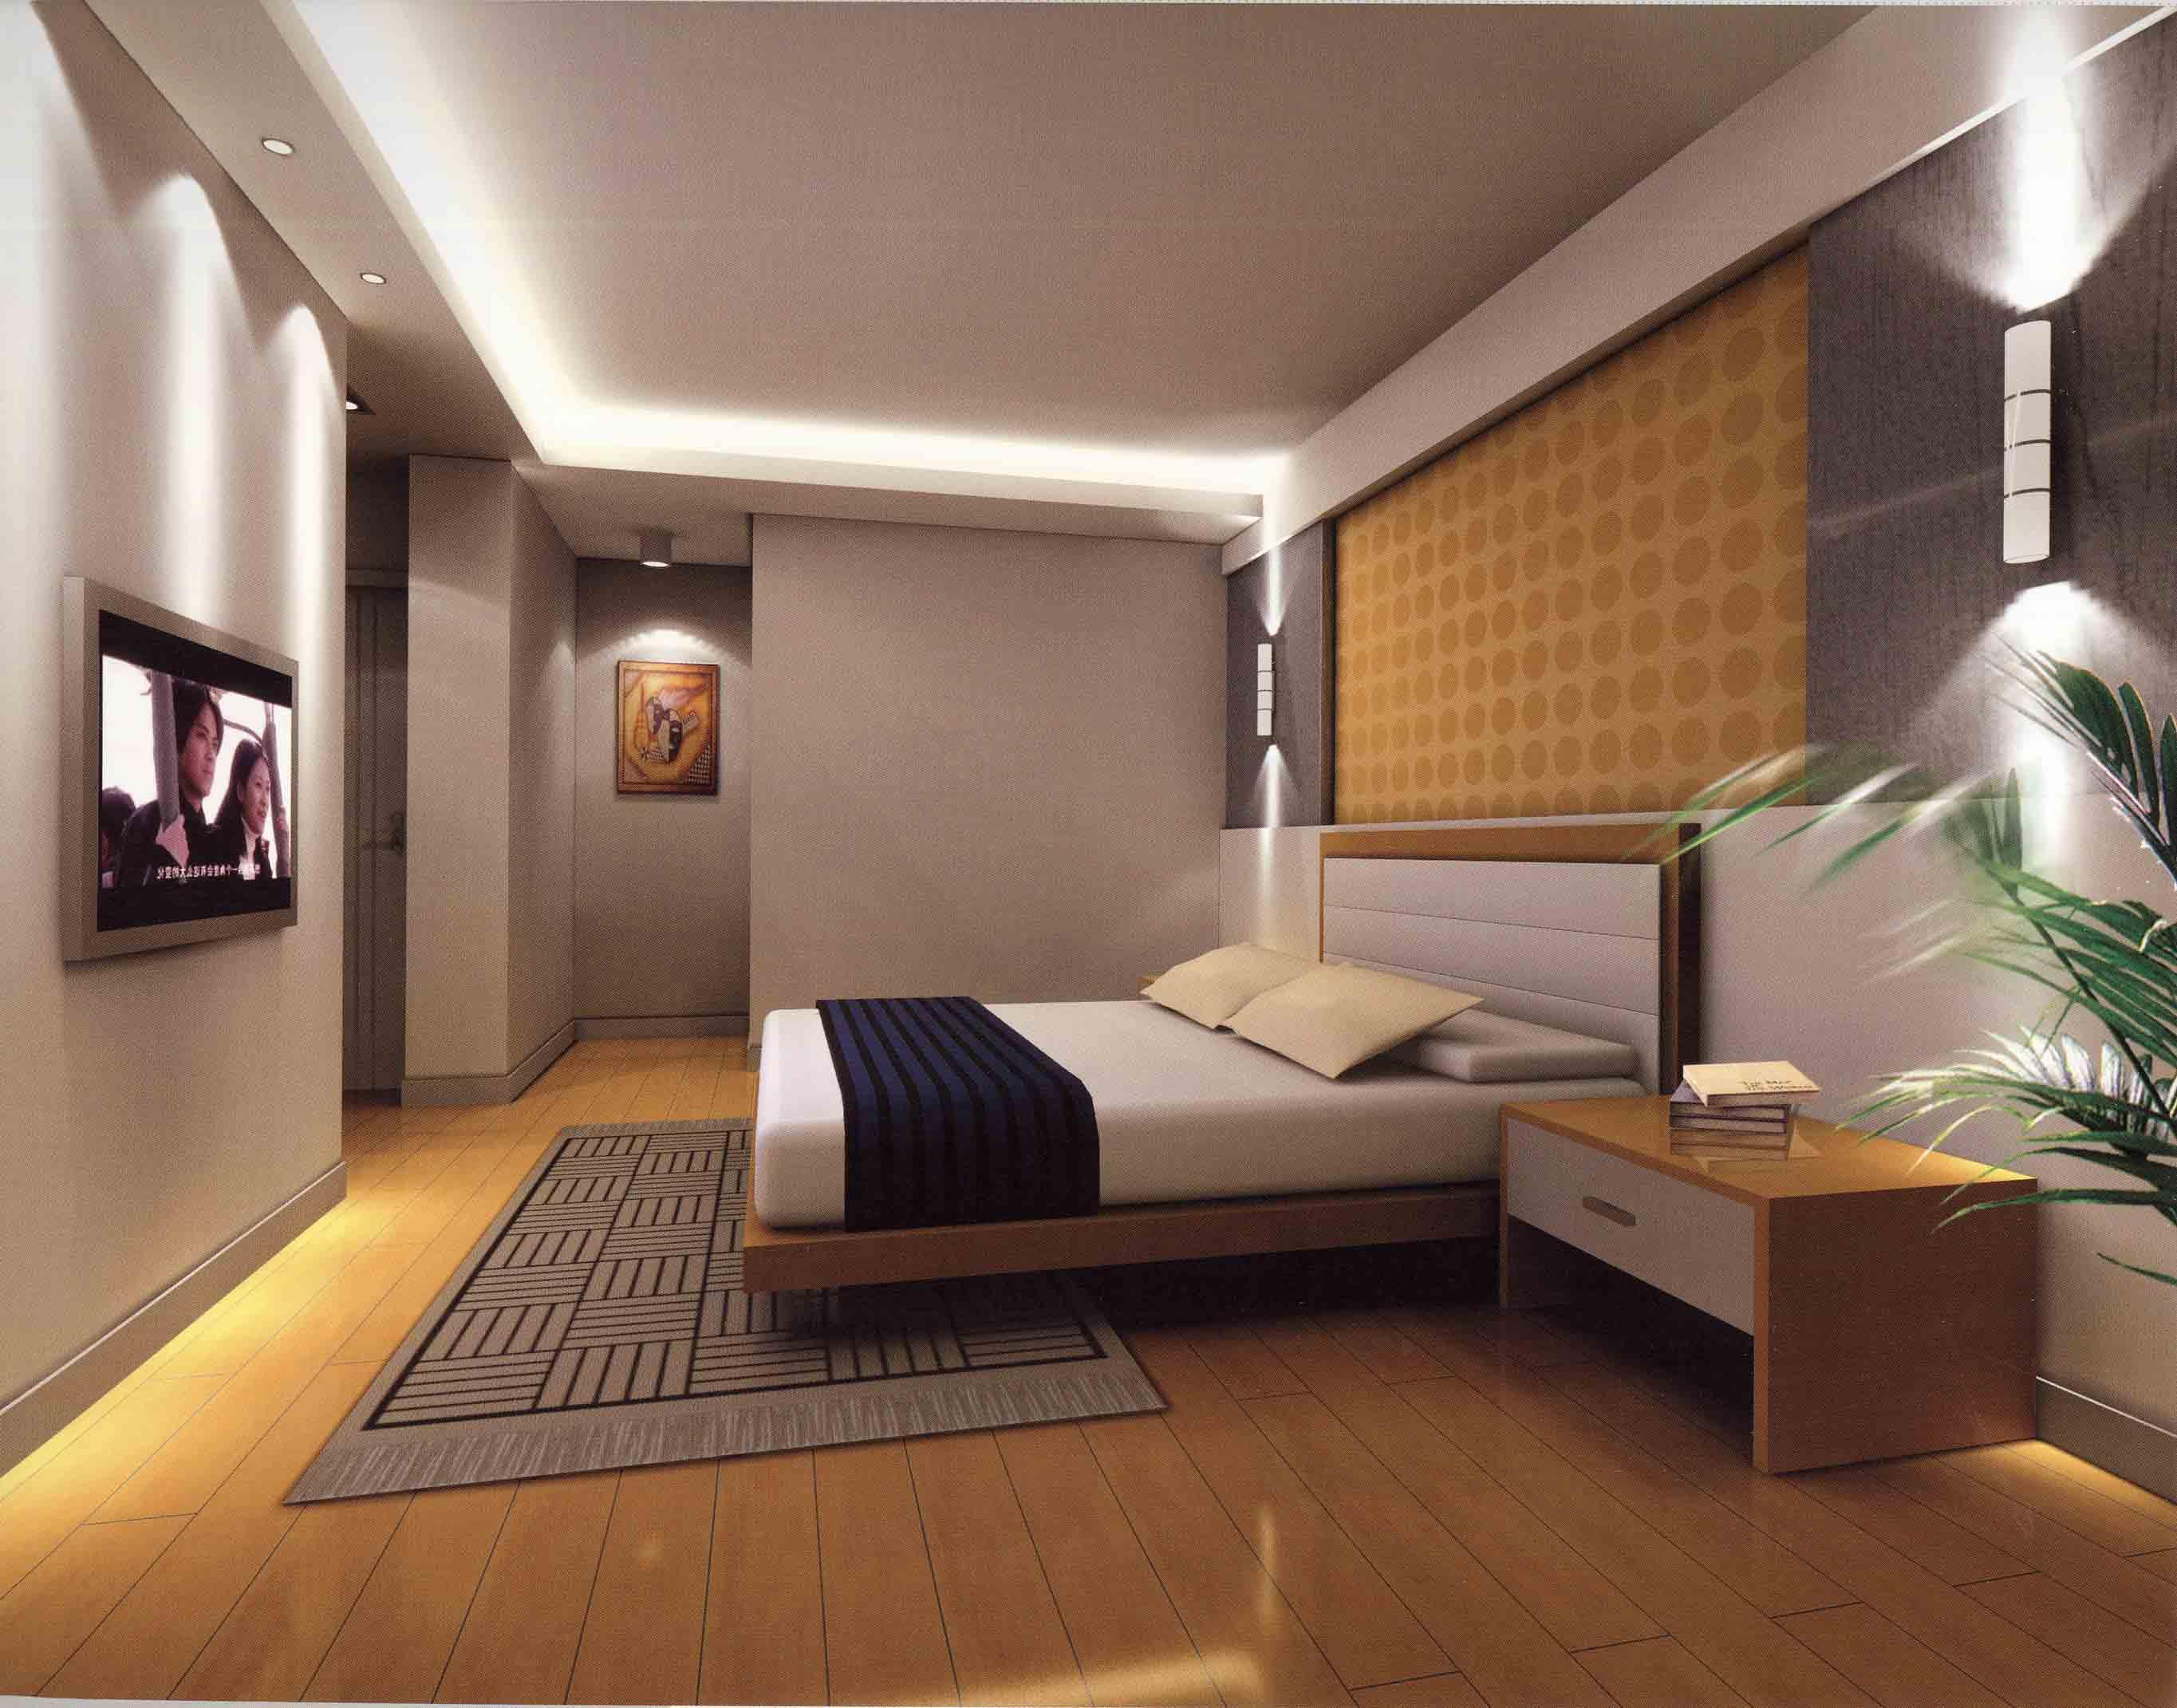 25 Cool Bedroom Designs Collection - The WoW Style on Cool Bedroom Ideas For Small Rooms  id=11453